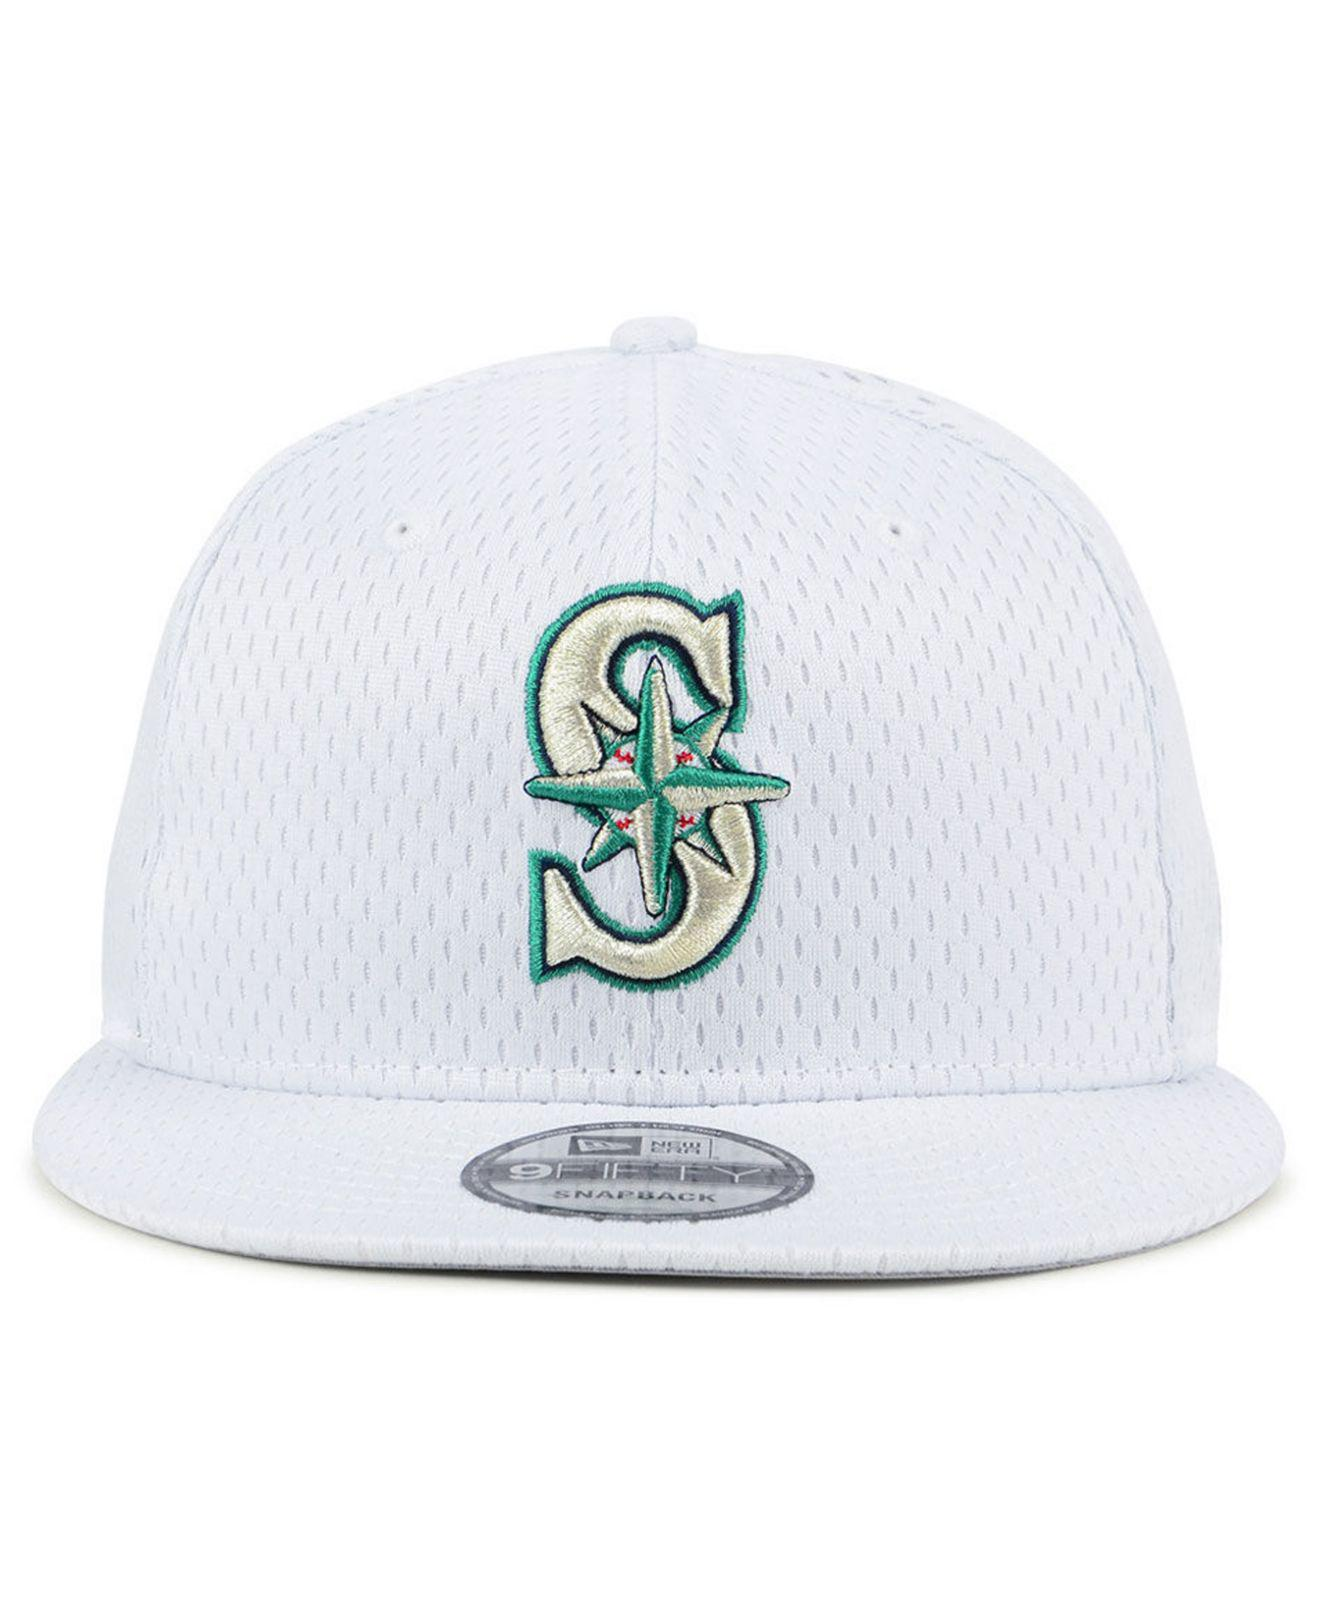 finest selection ab19d 54899 ... 50% off lyst ktz seattle mariners batting practice mesh 9fifty snapback  cap in white for